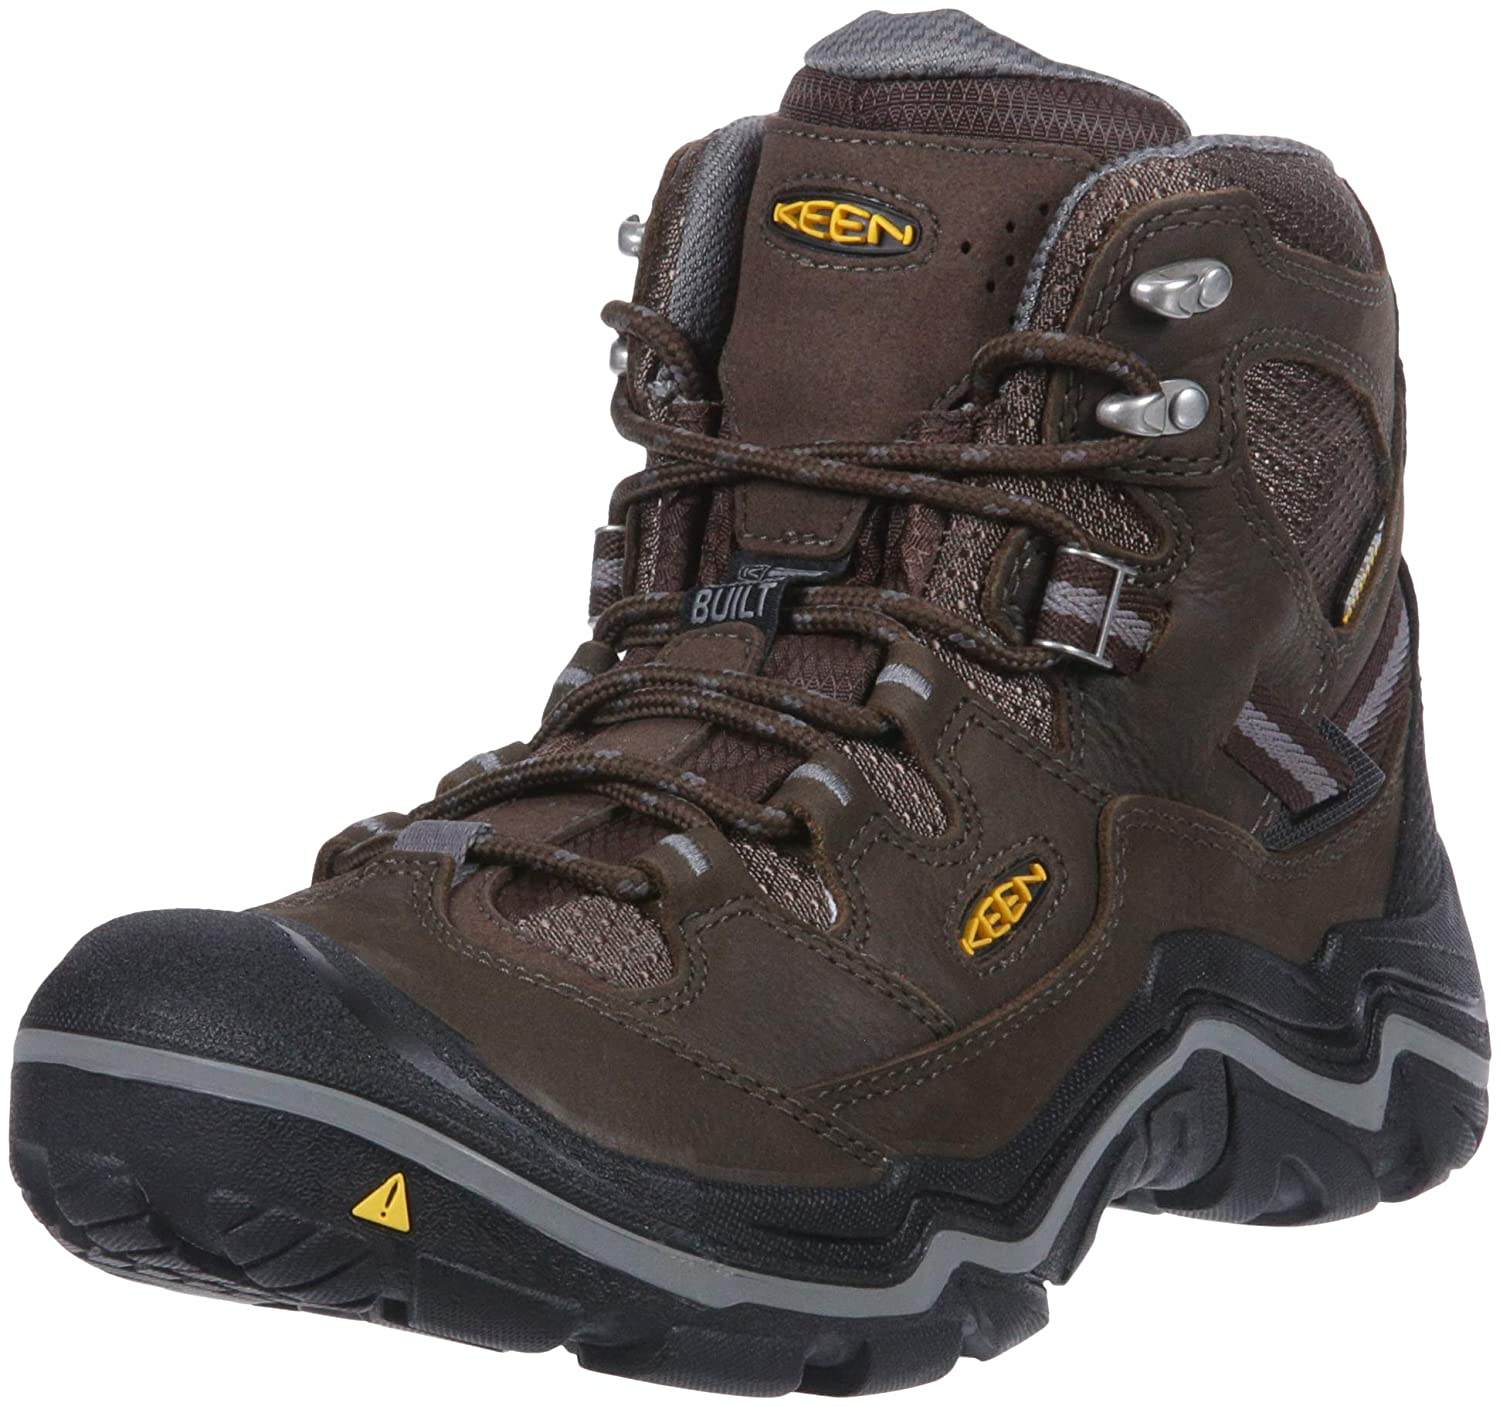 Keen Men's Durand Mid WP Hiking Boots Keen - US Shoes 1011550